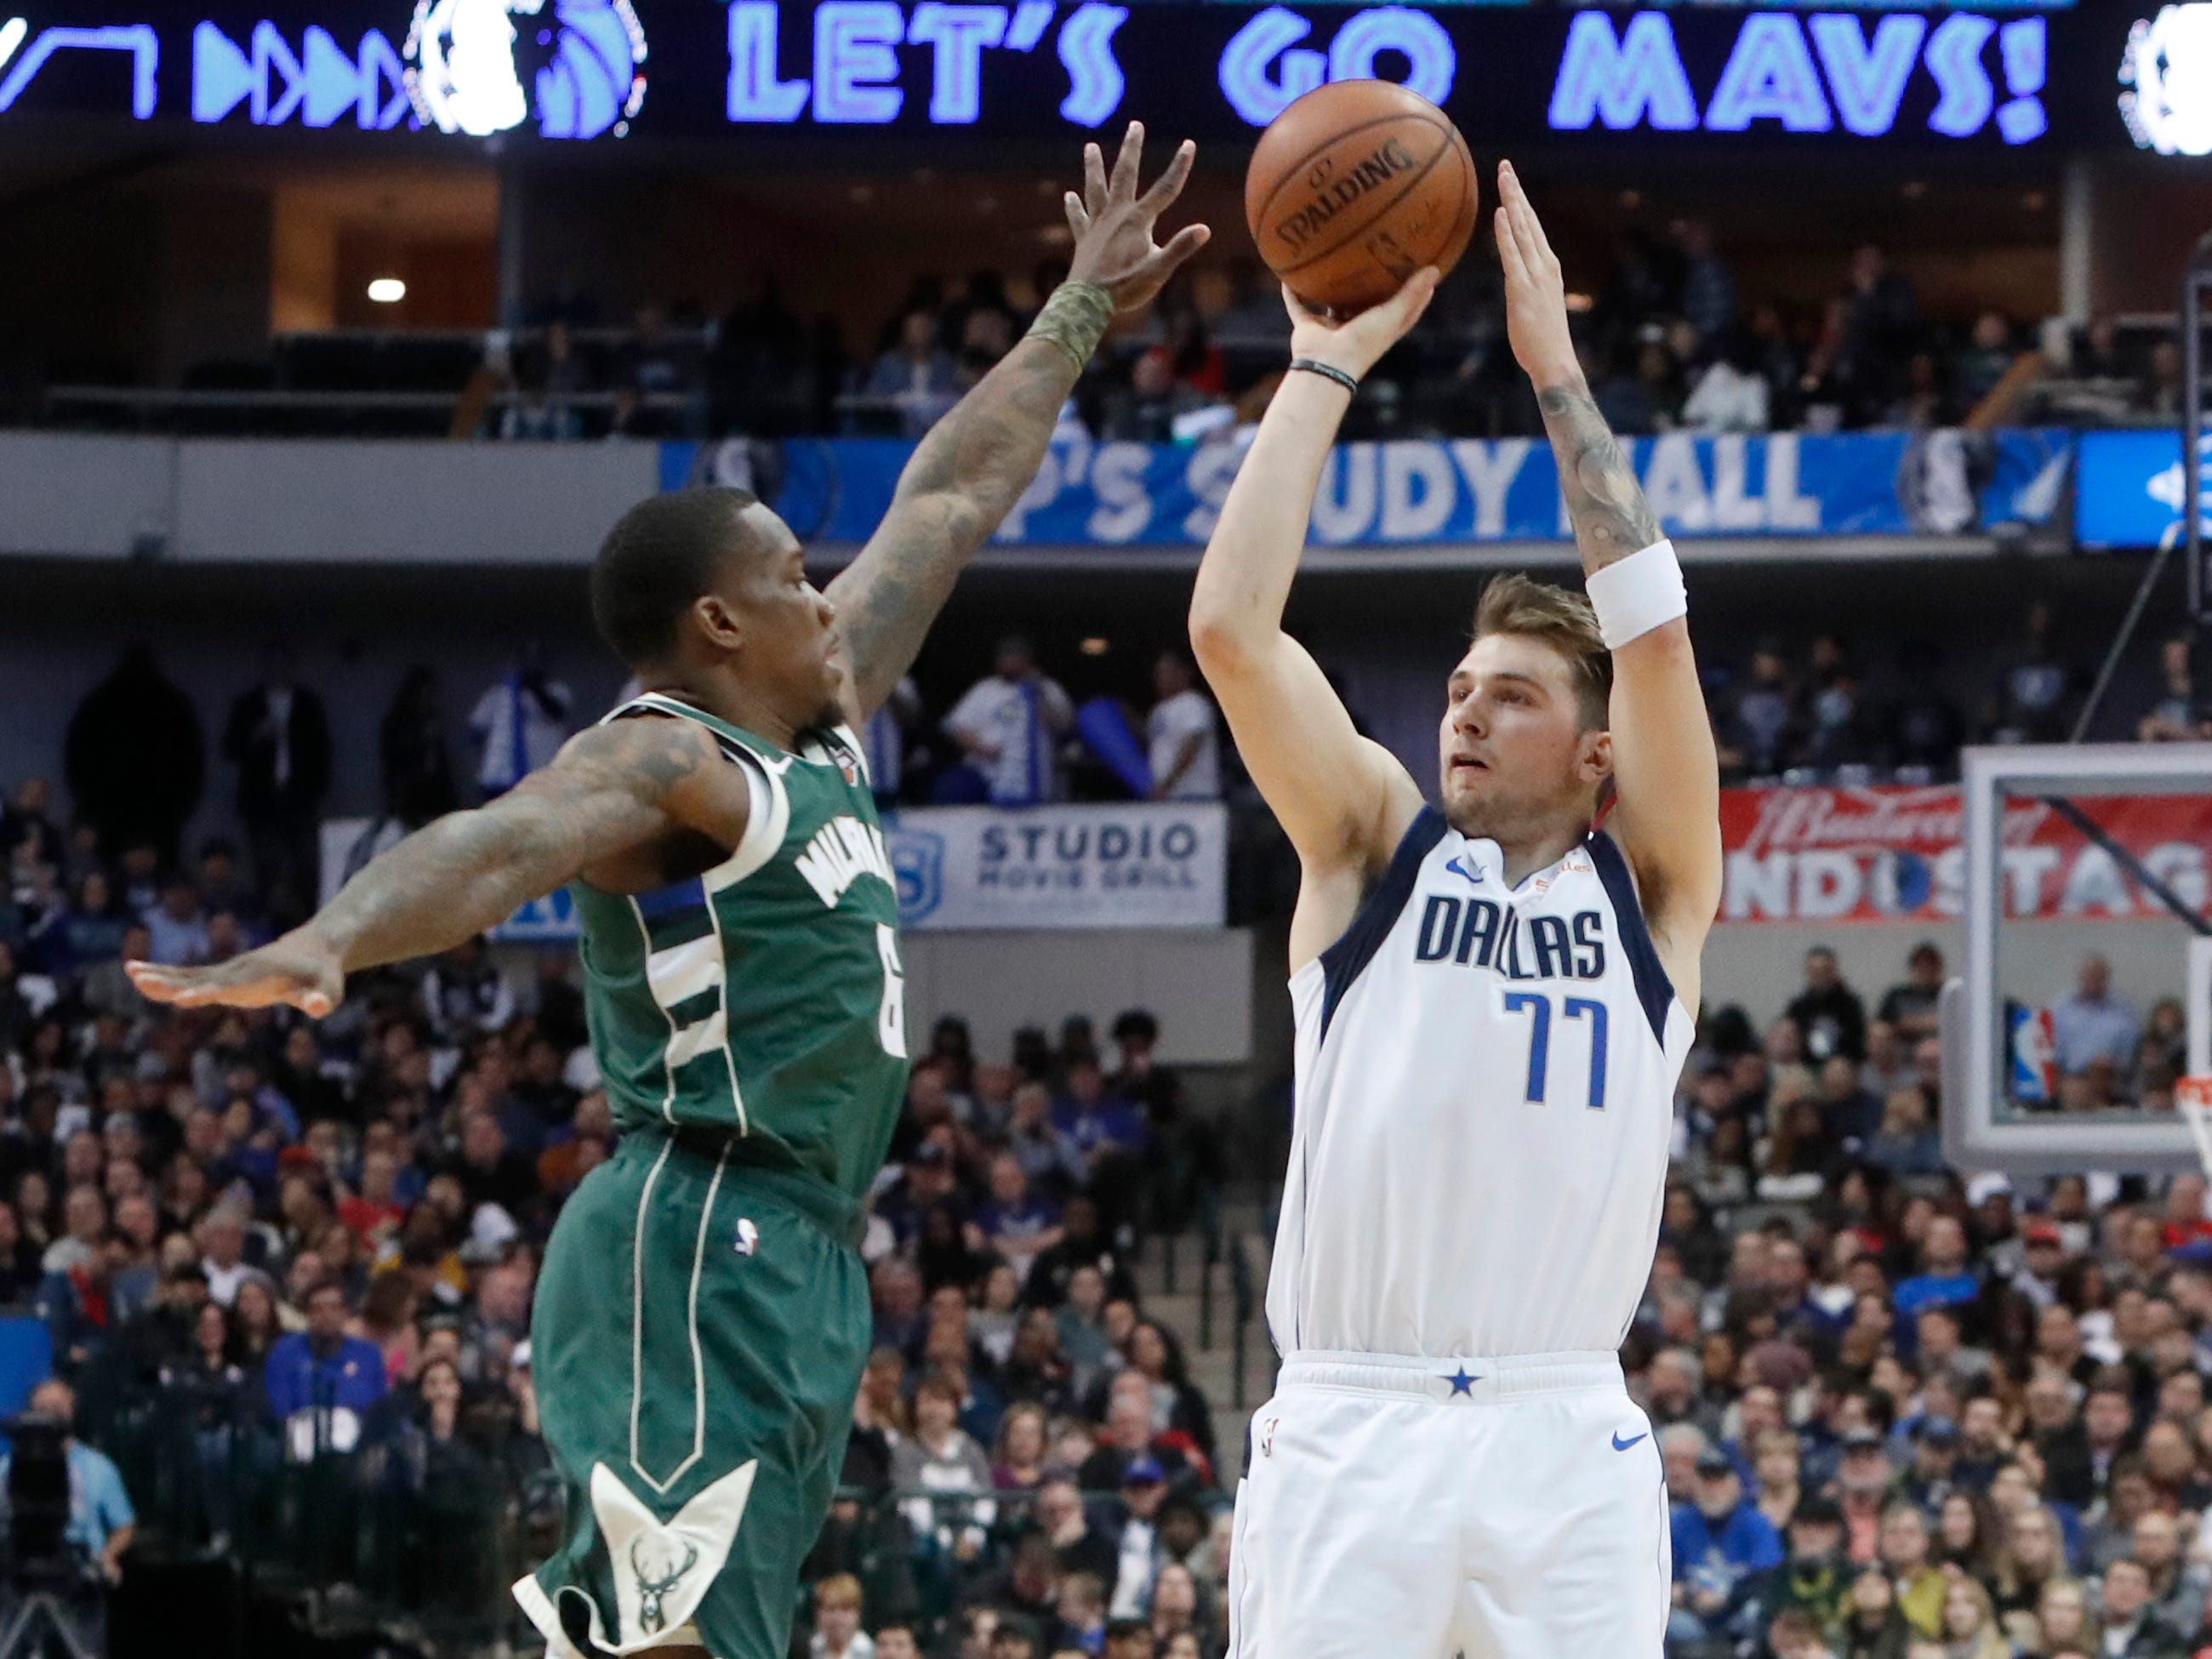 Mavericks forward Luka Doncic launches a three-pointer over Bucks guard Eric Bledsoe during the first half. Dallas tied a franchise record by hitting 22 trifectas against Milwaukee on Friday night.